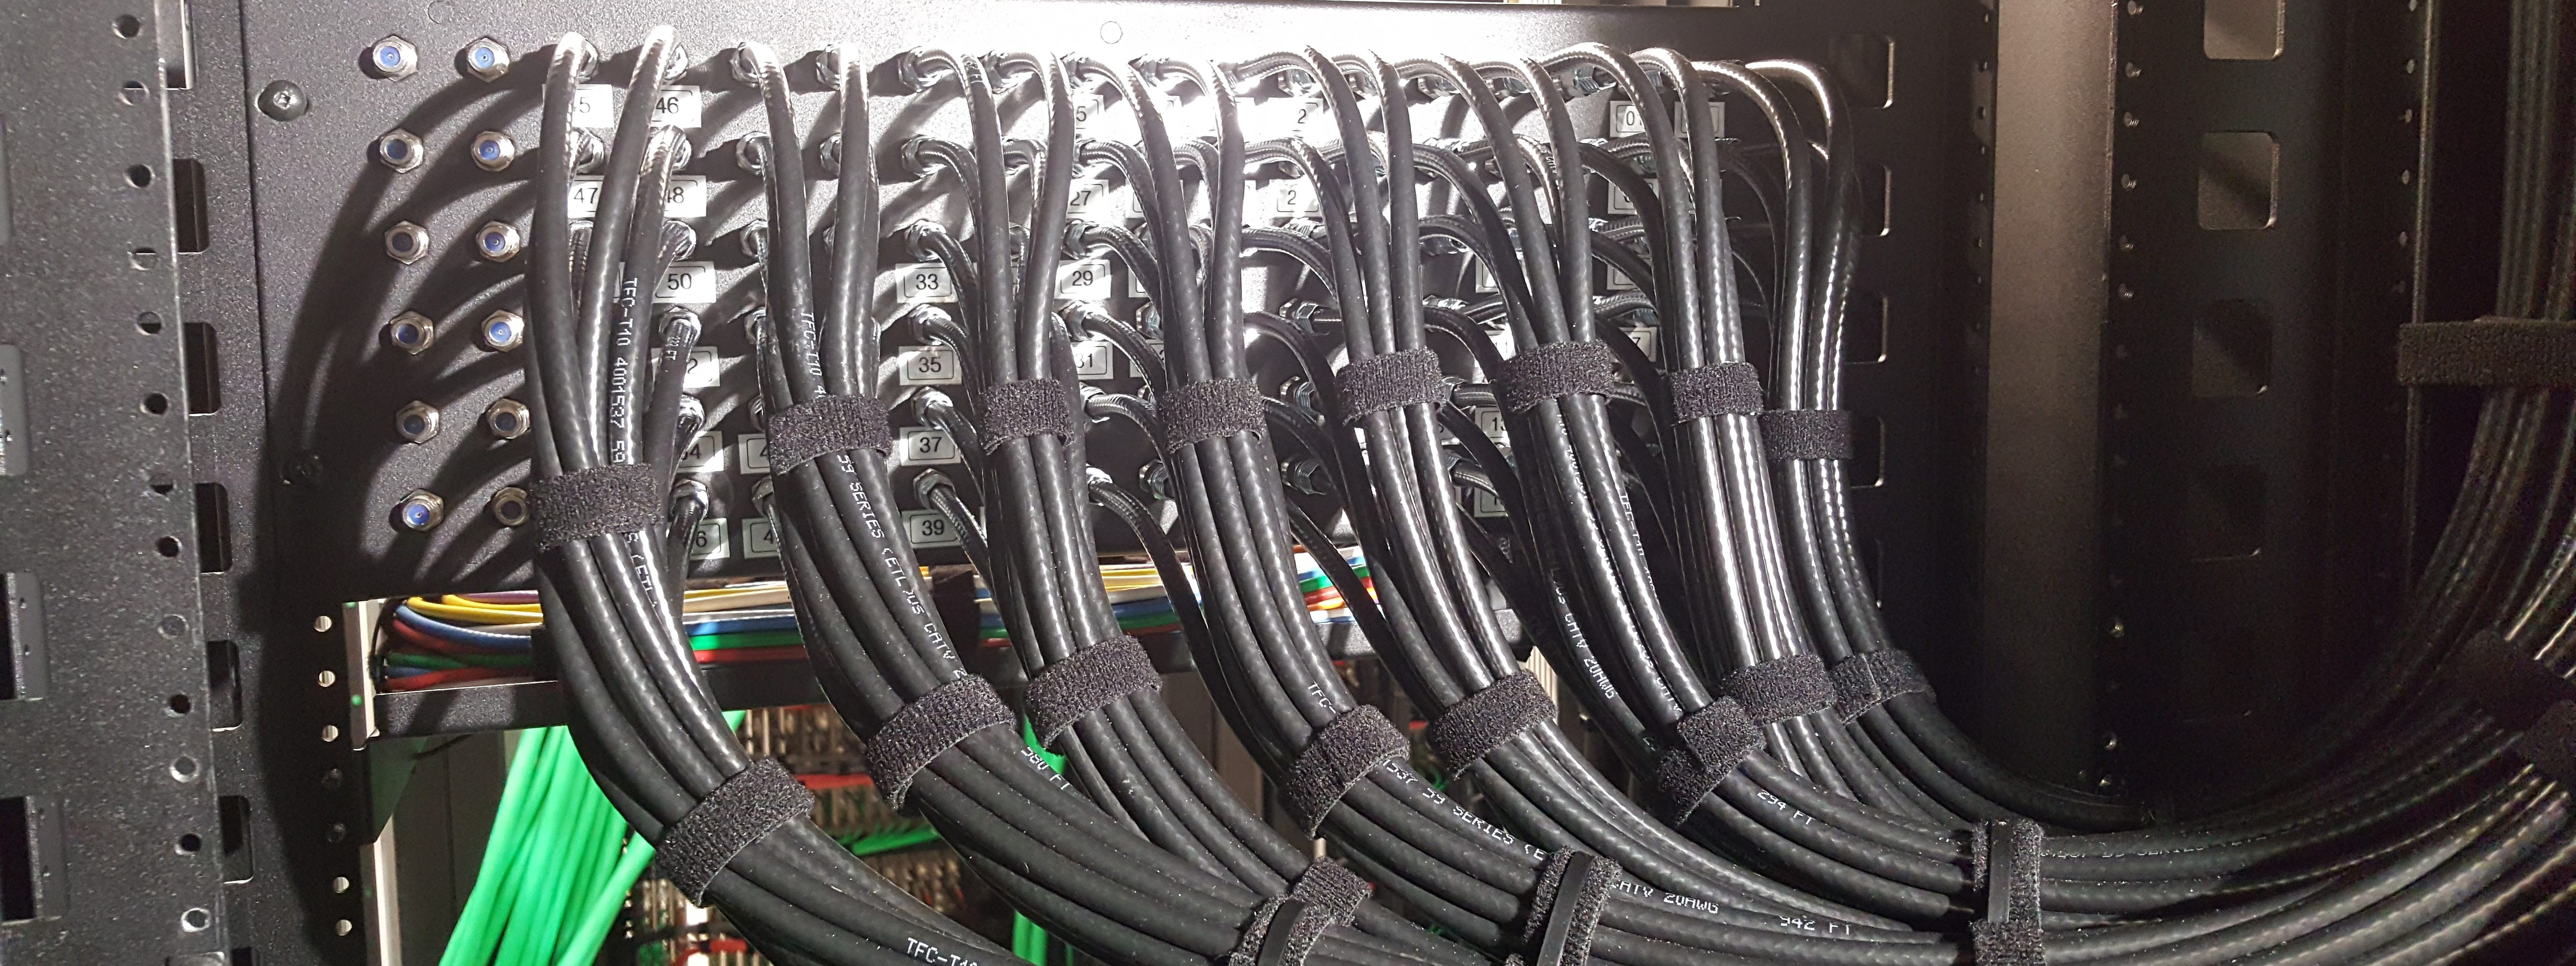 Helix It Your Structured Cabling Experts Inc Contact Us To Learn More About Our Wiring Services